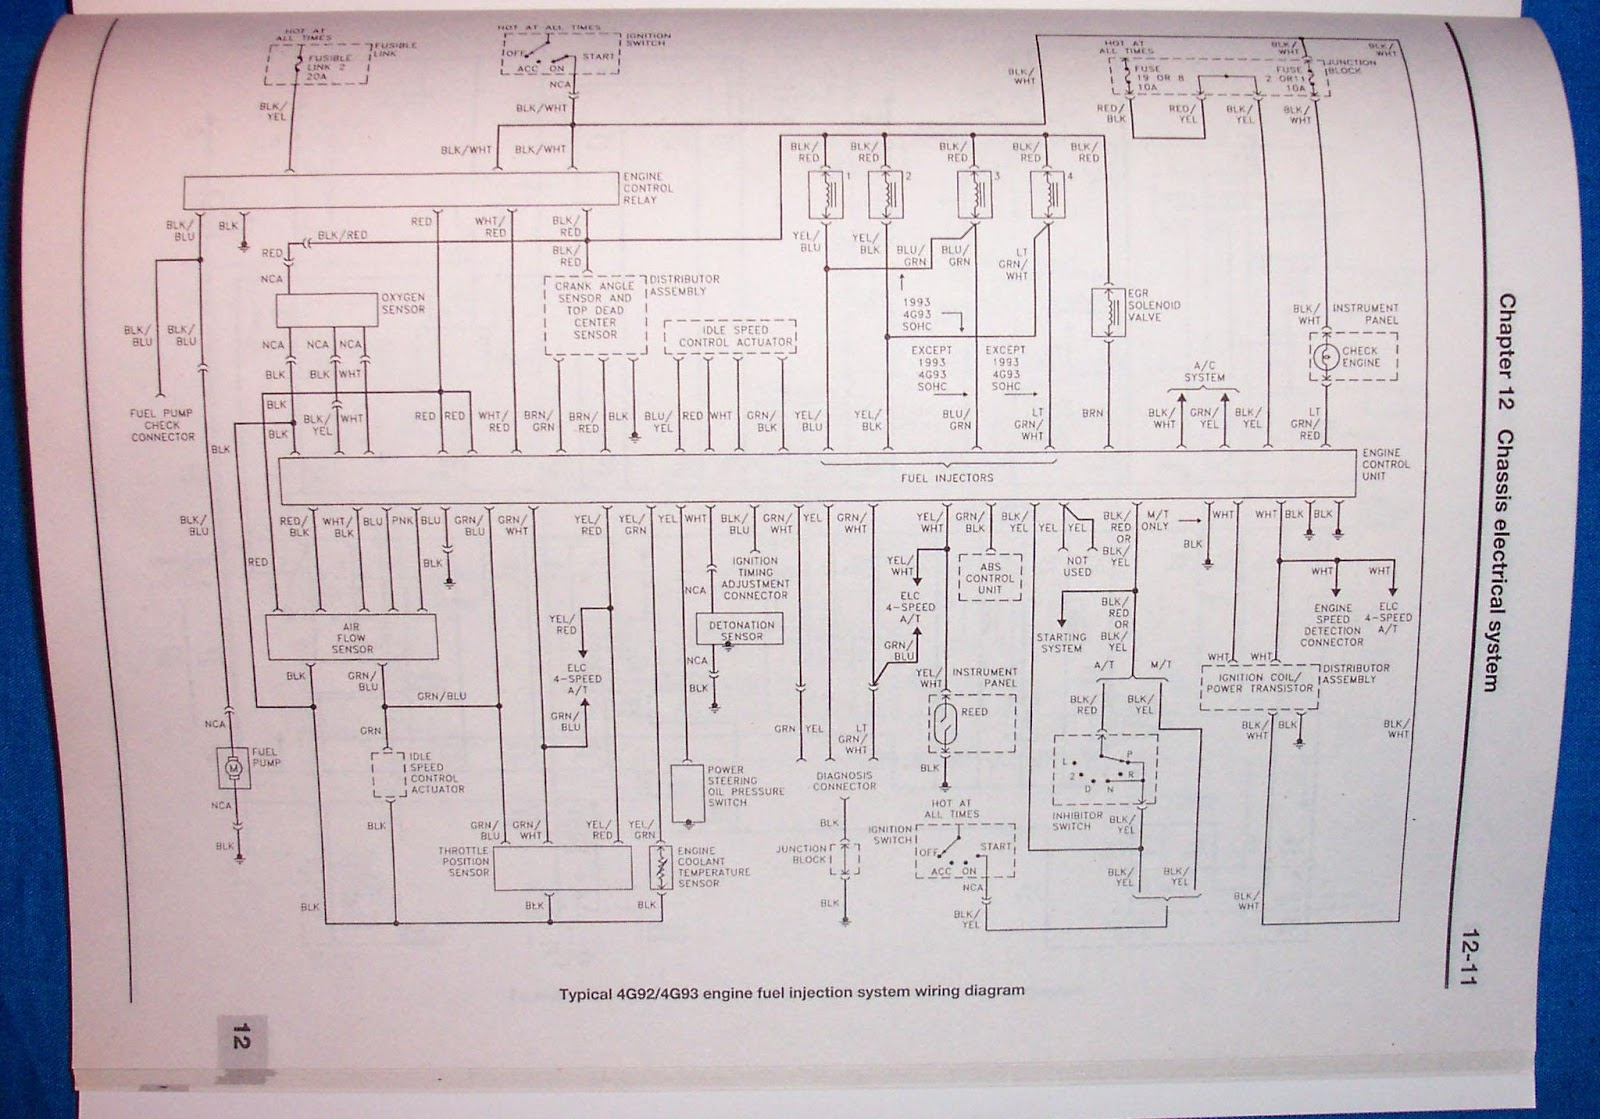 small resolution of electrical wiring diagram for 4g9x